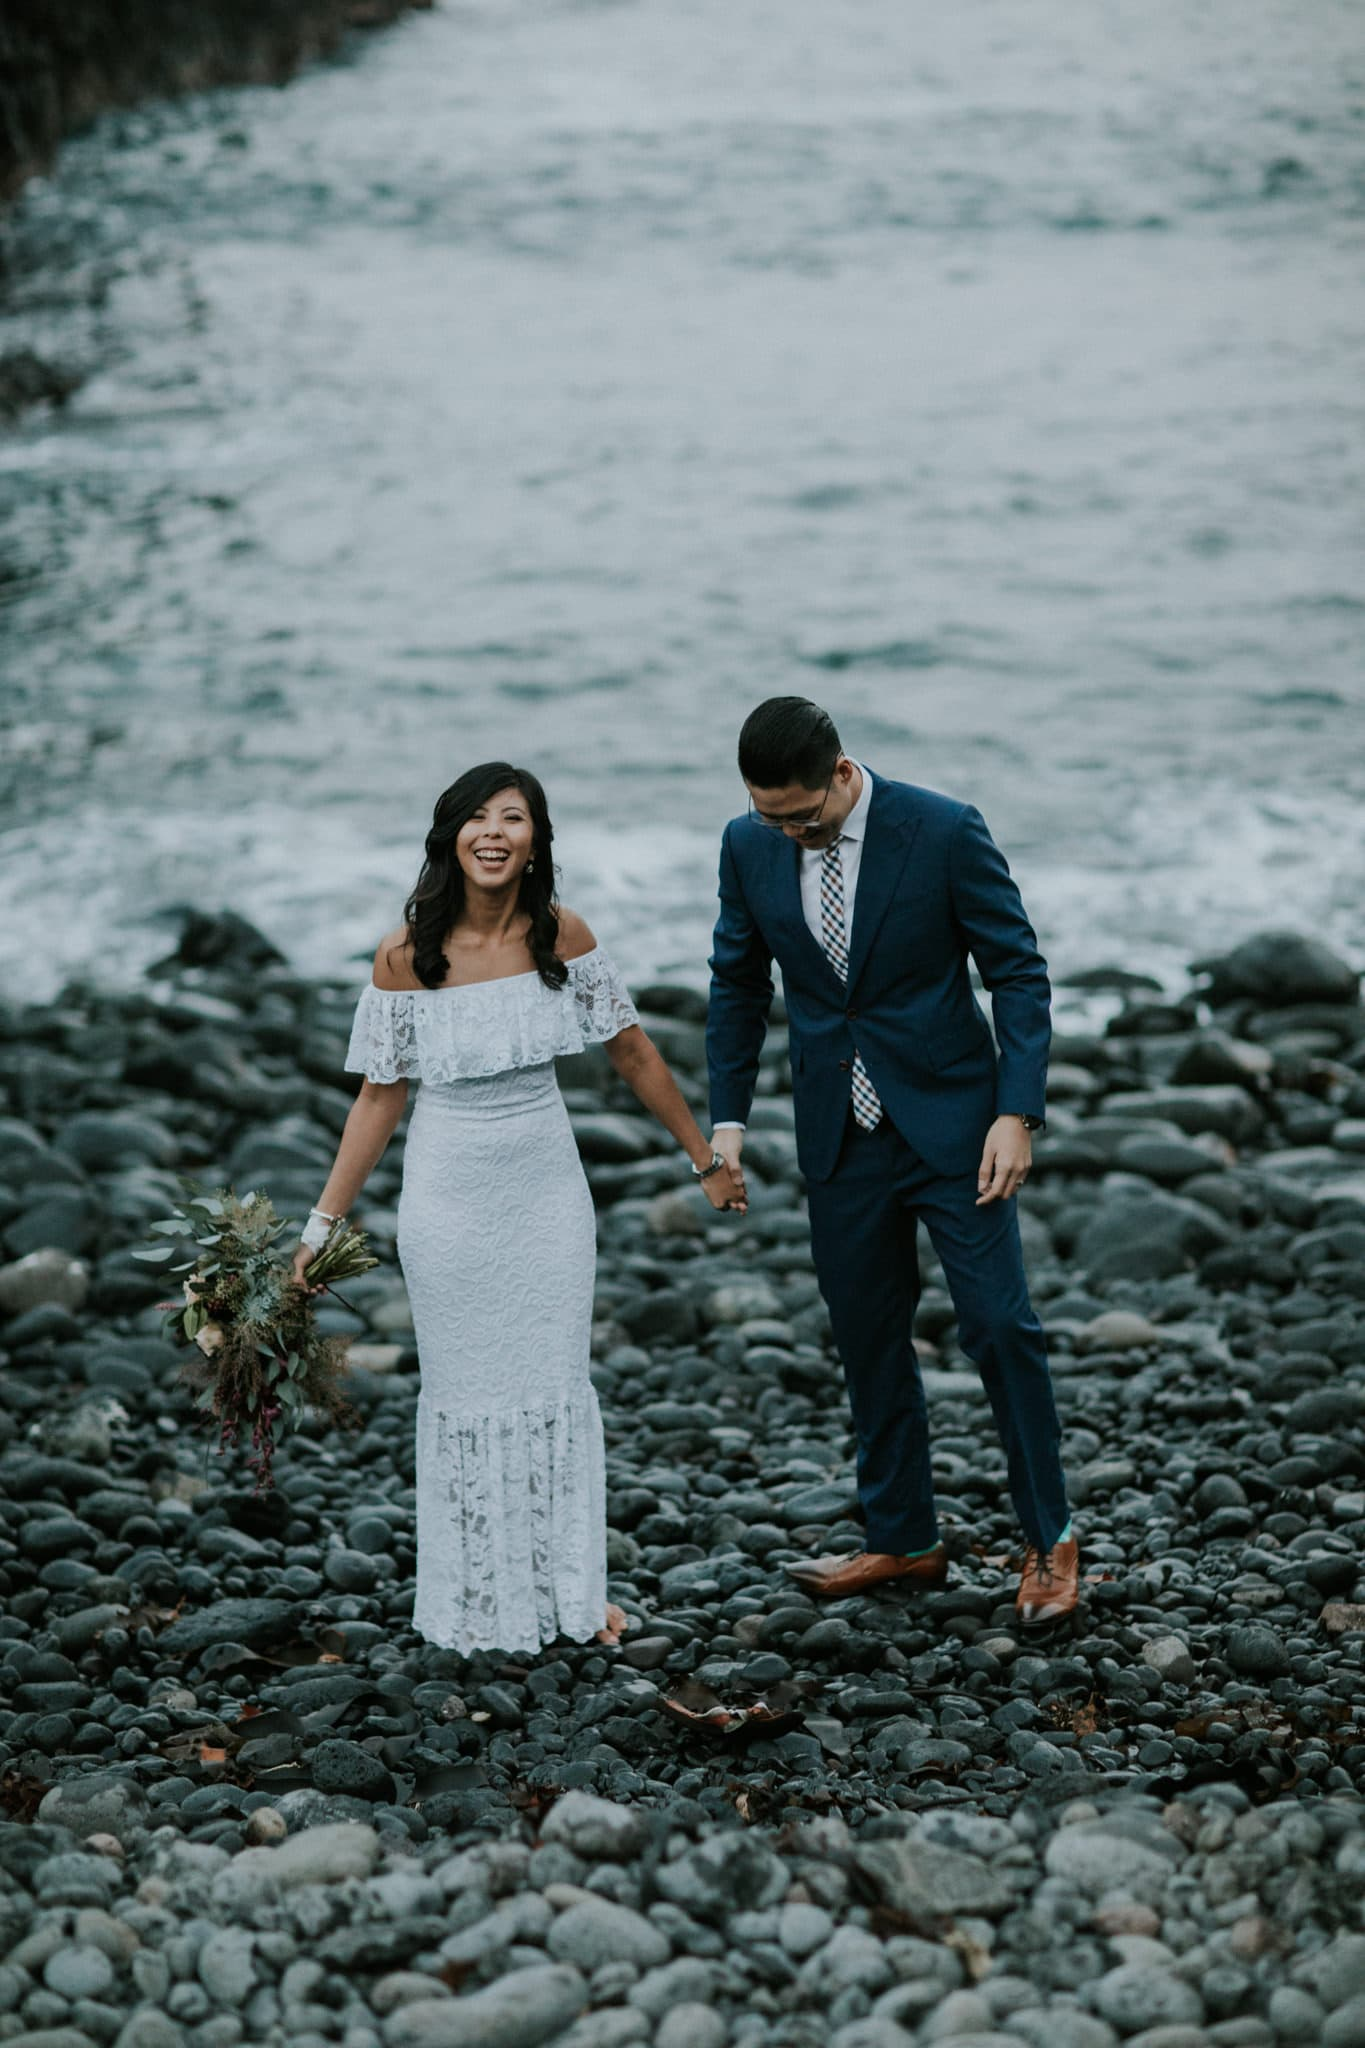 Asian Wedding Couple - Overseas Wedding Photographer from Australia for Pre wedding Shoots in melbourne